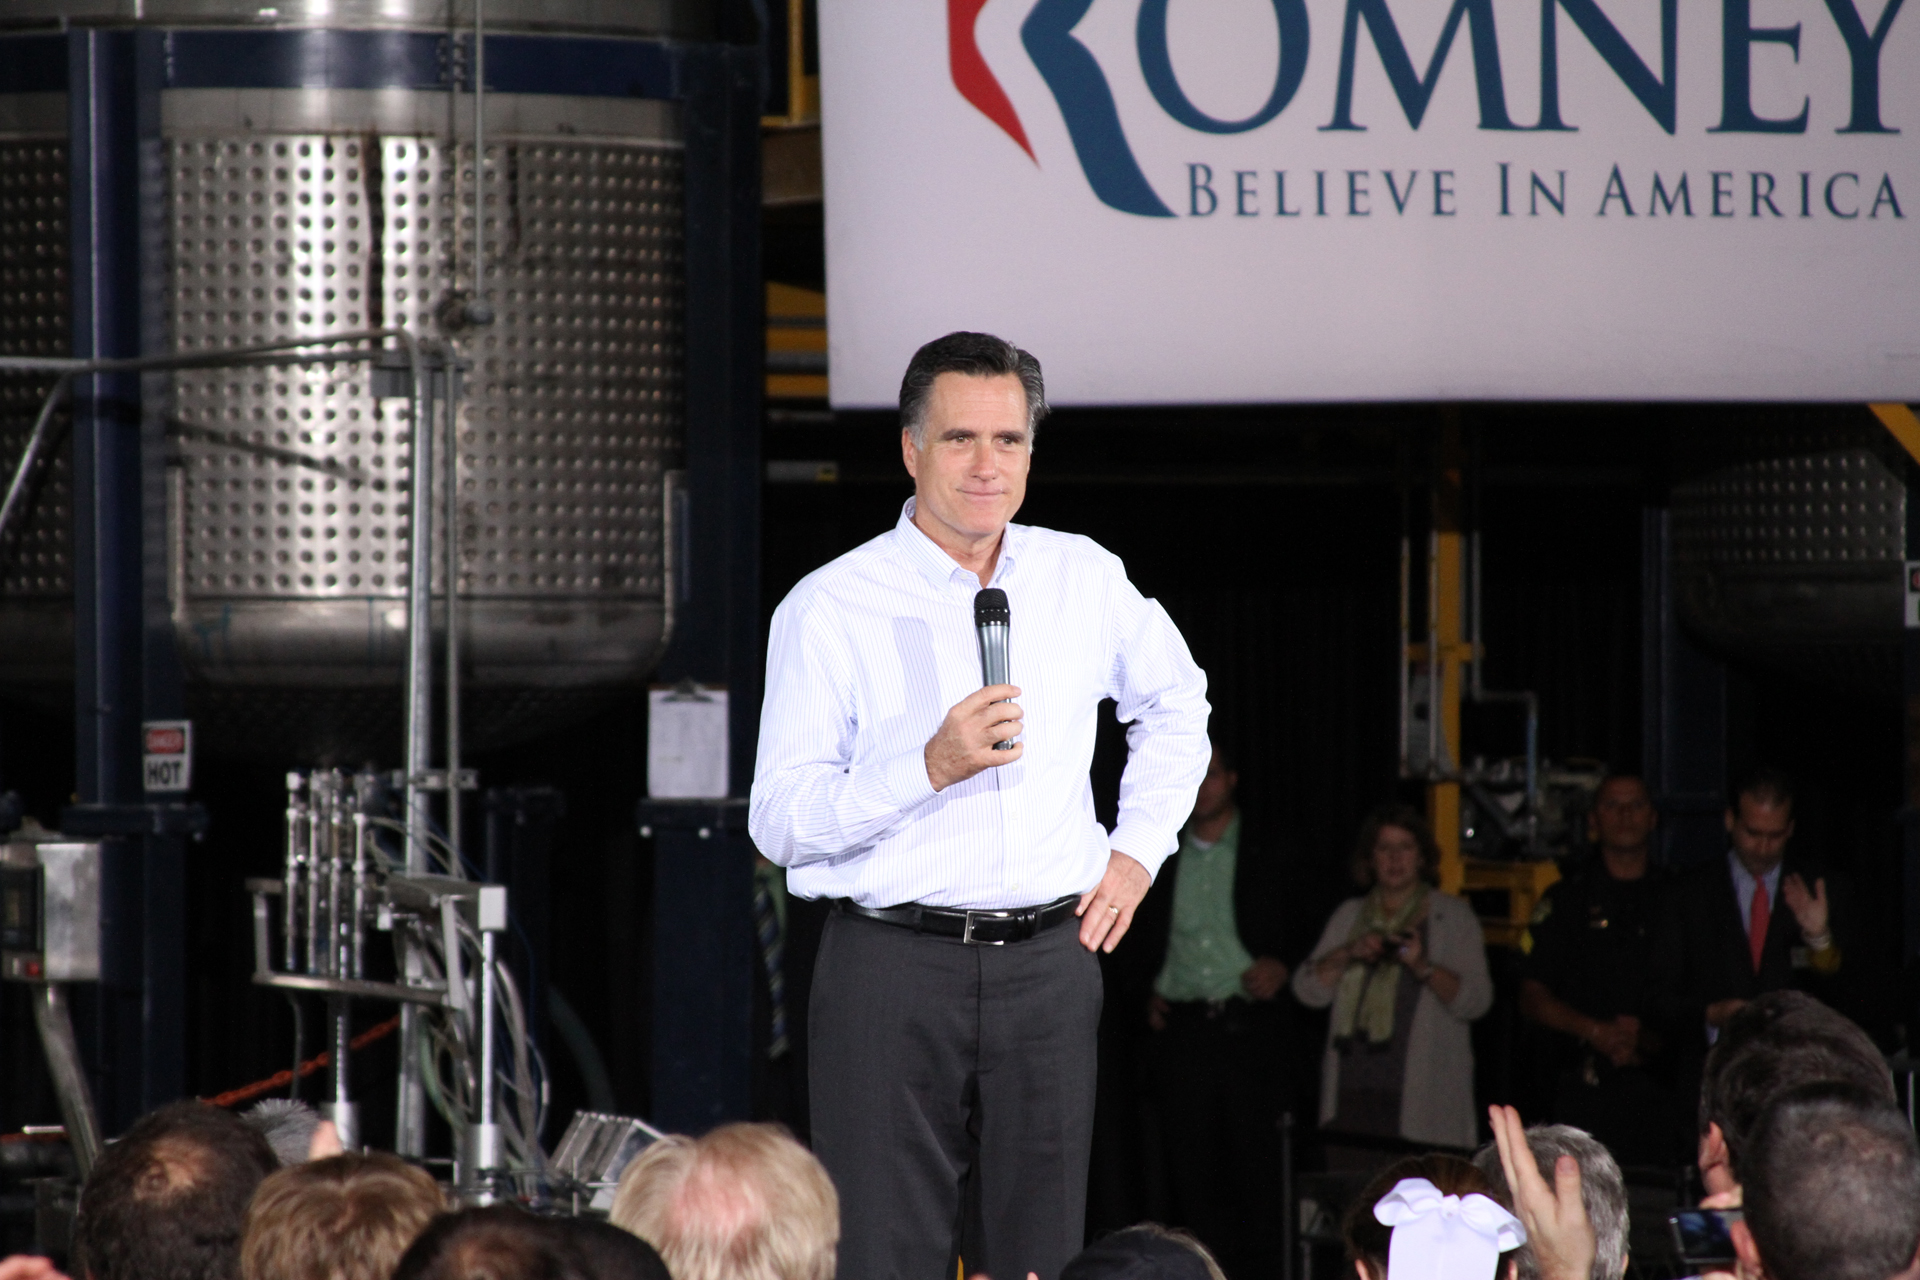 Video: Florida Republican Primary Heats Up; Romney Visits Orlando